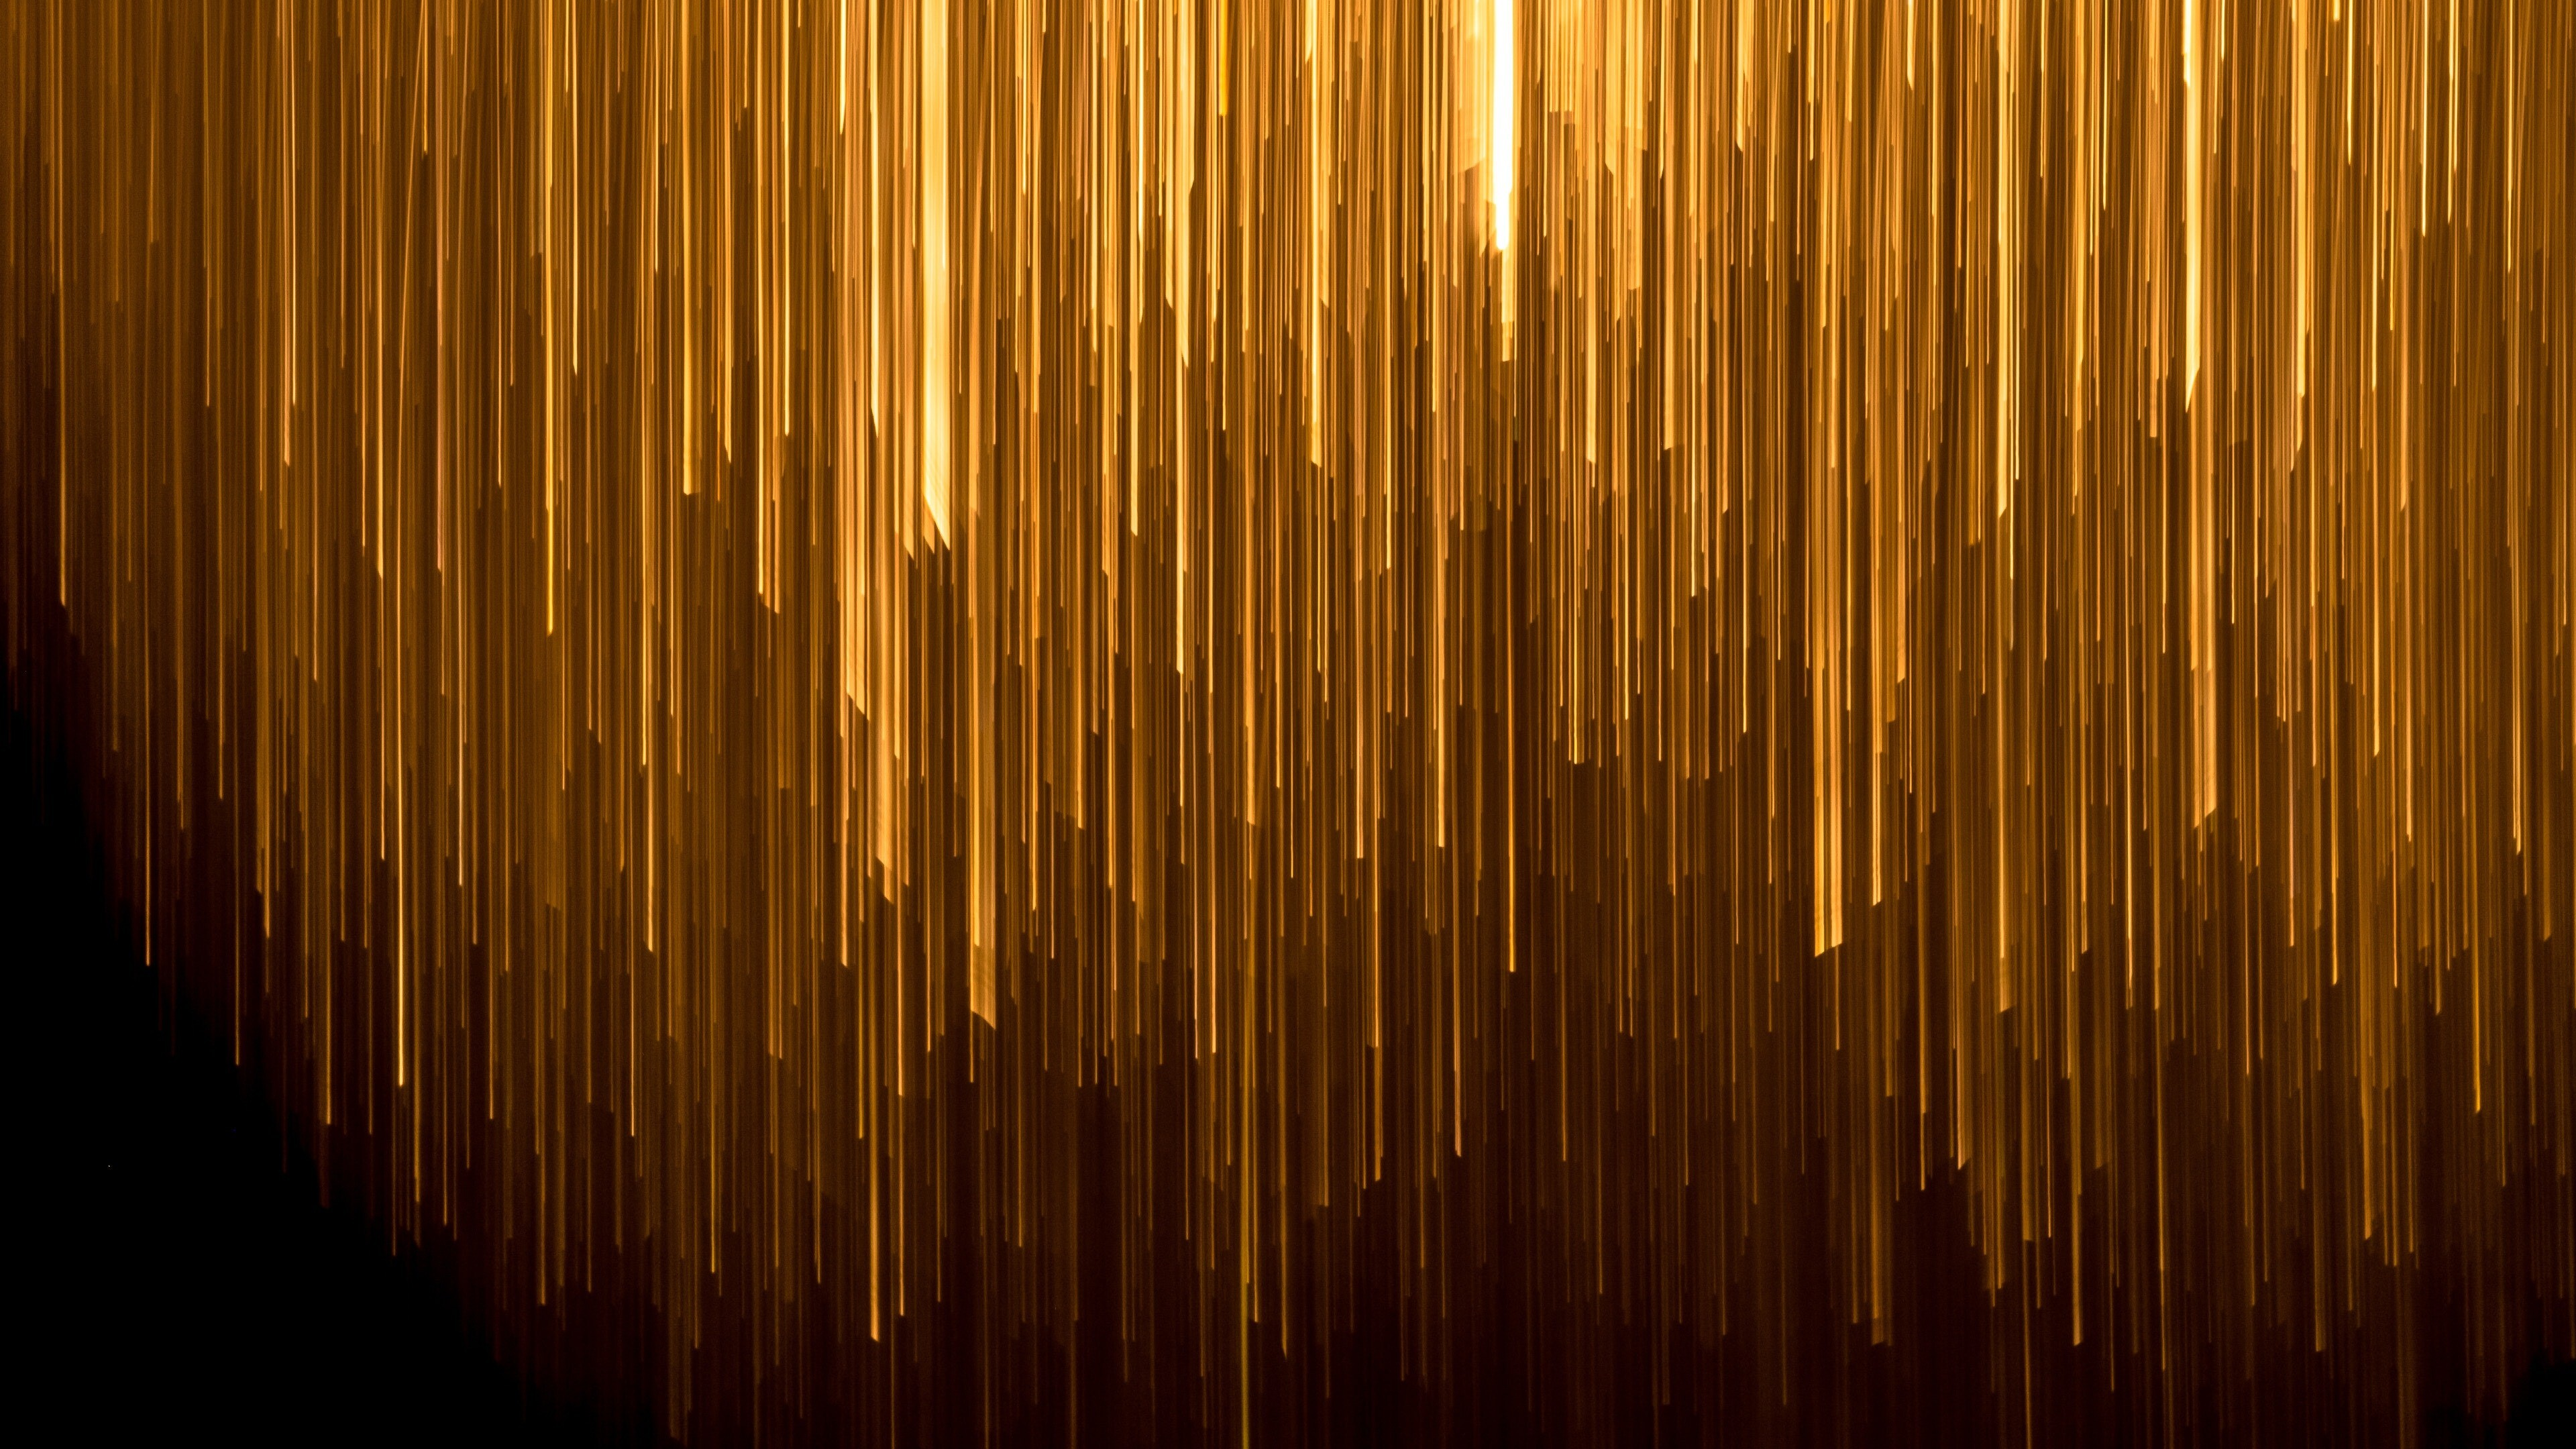 Golden Lines In Black Background Abstract 4k Wallpaper Hd